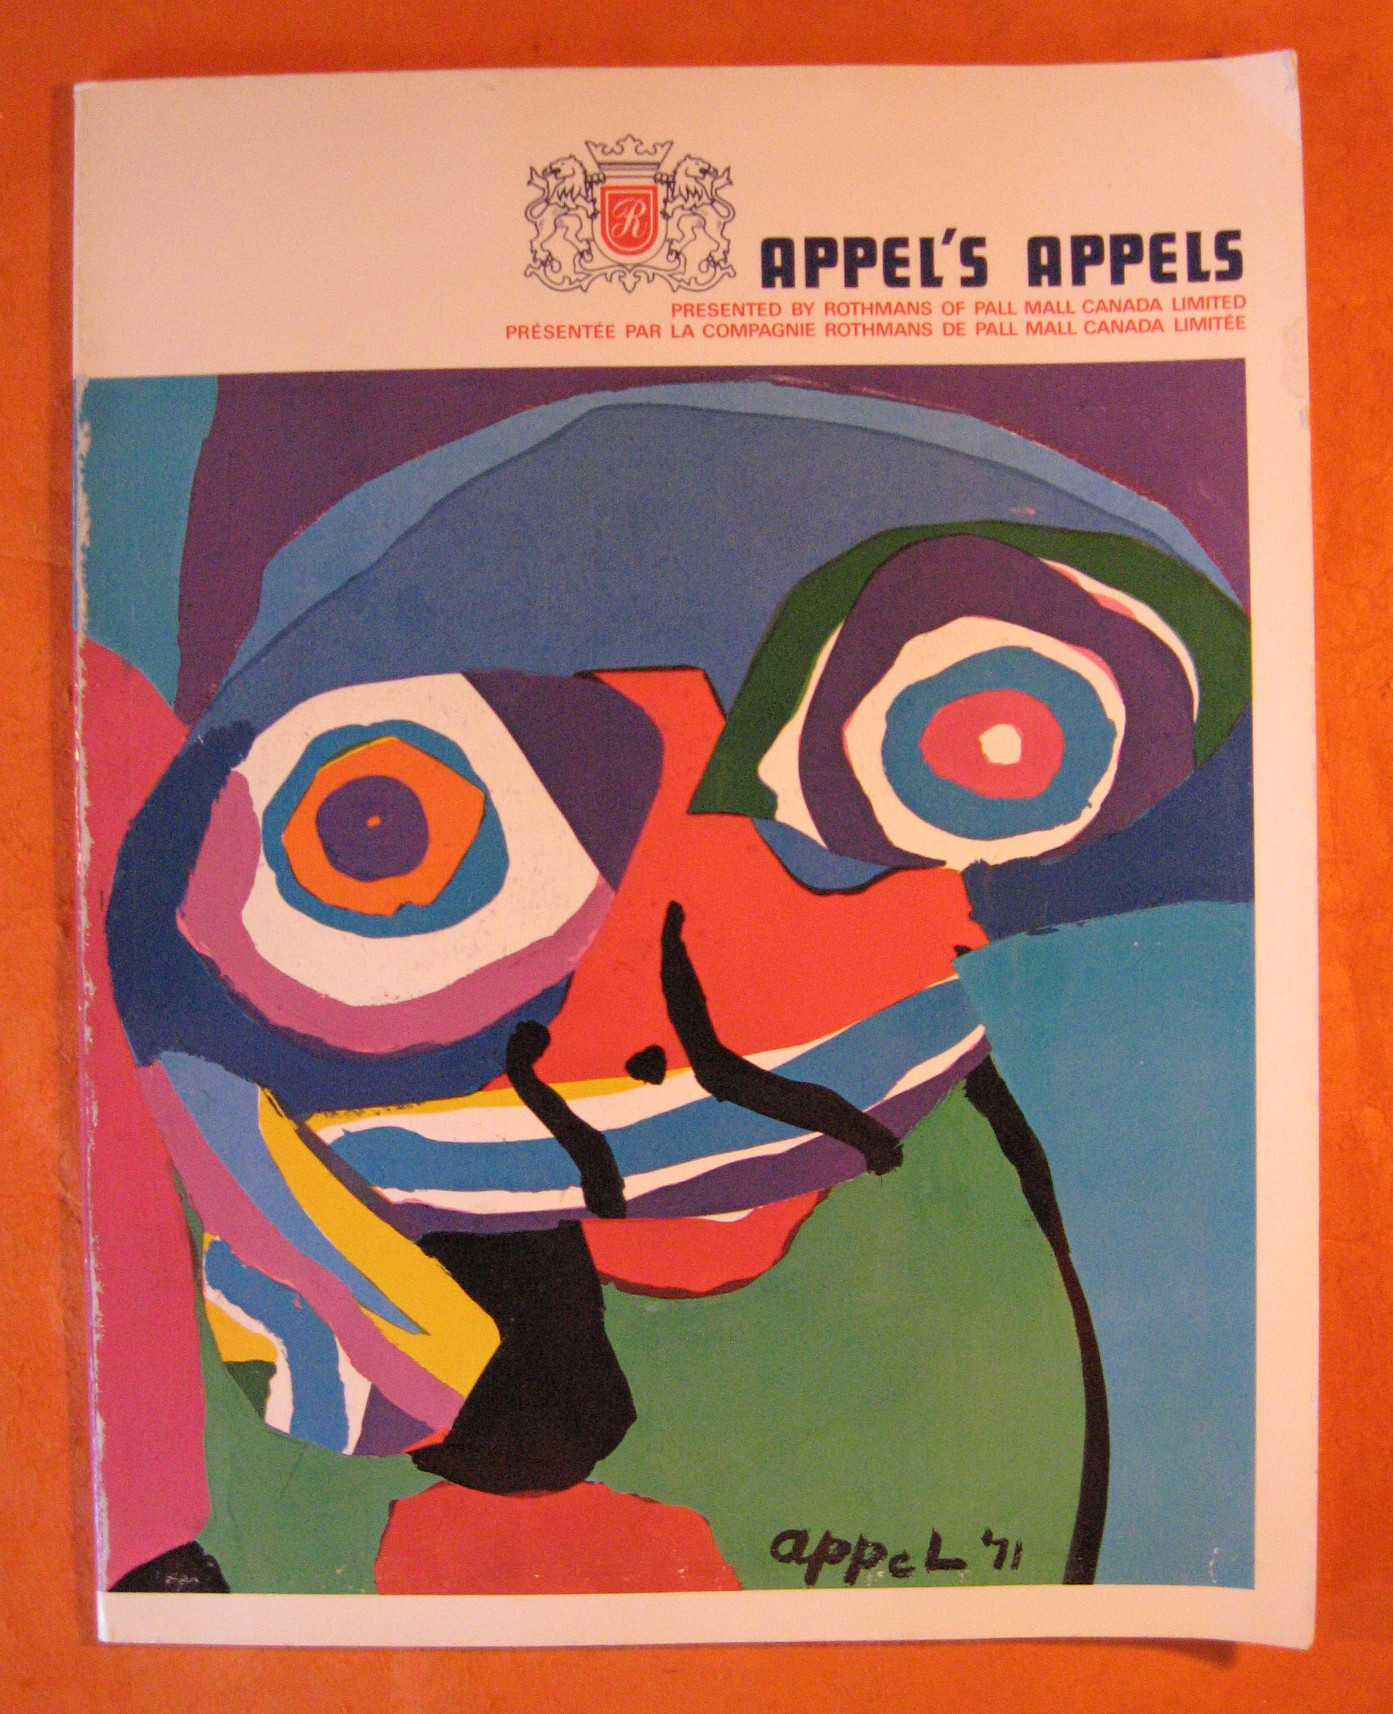 Appel's Appels Presented by Rothmans of Pall Mall, Canada, Appel, Karel